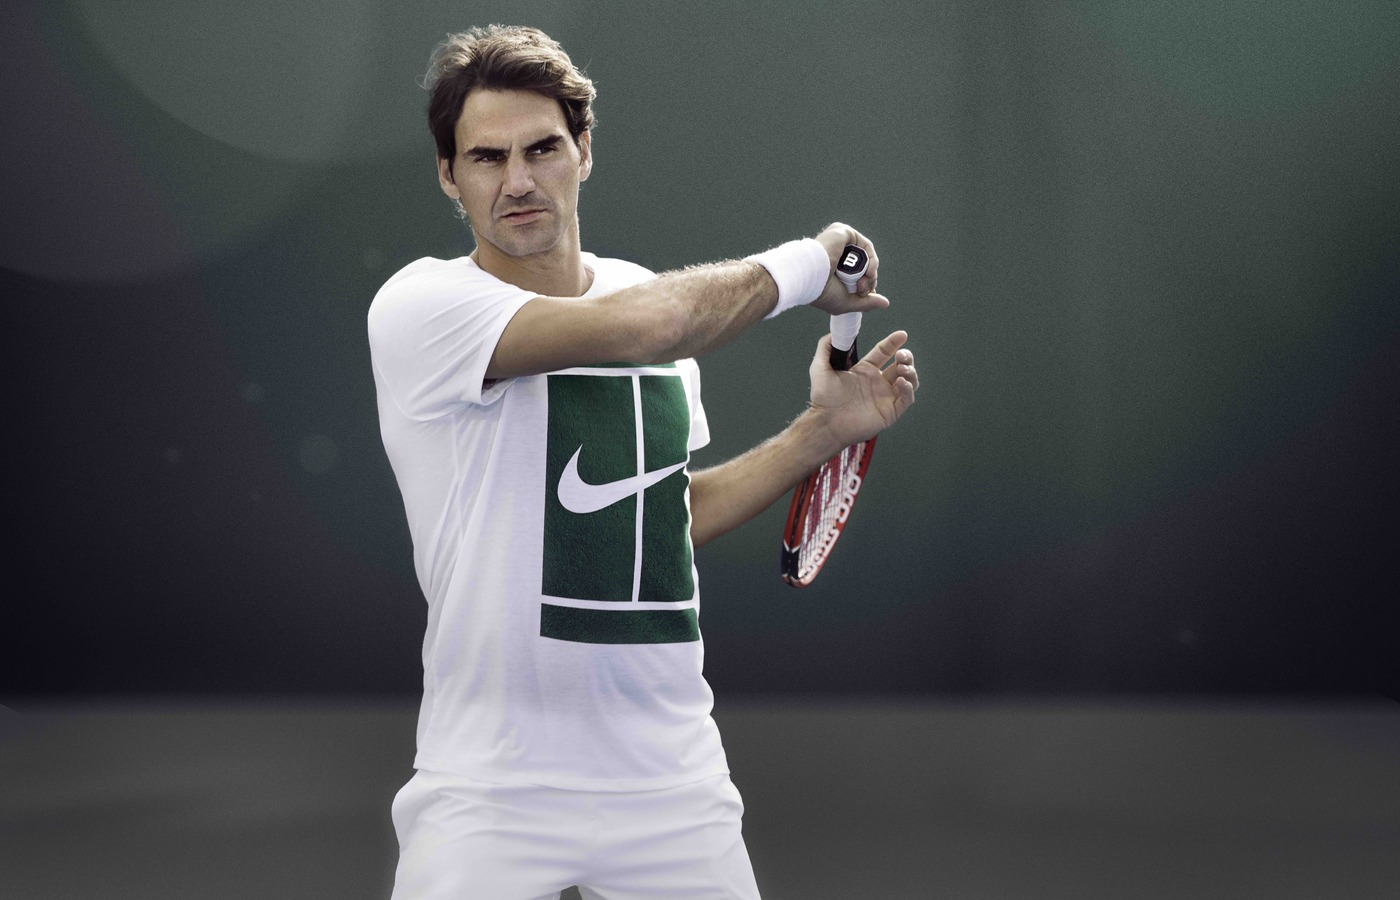 roger-federer-tennis-player-mp.jpg